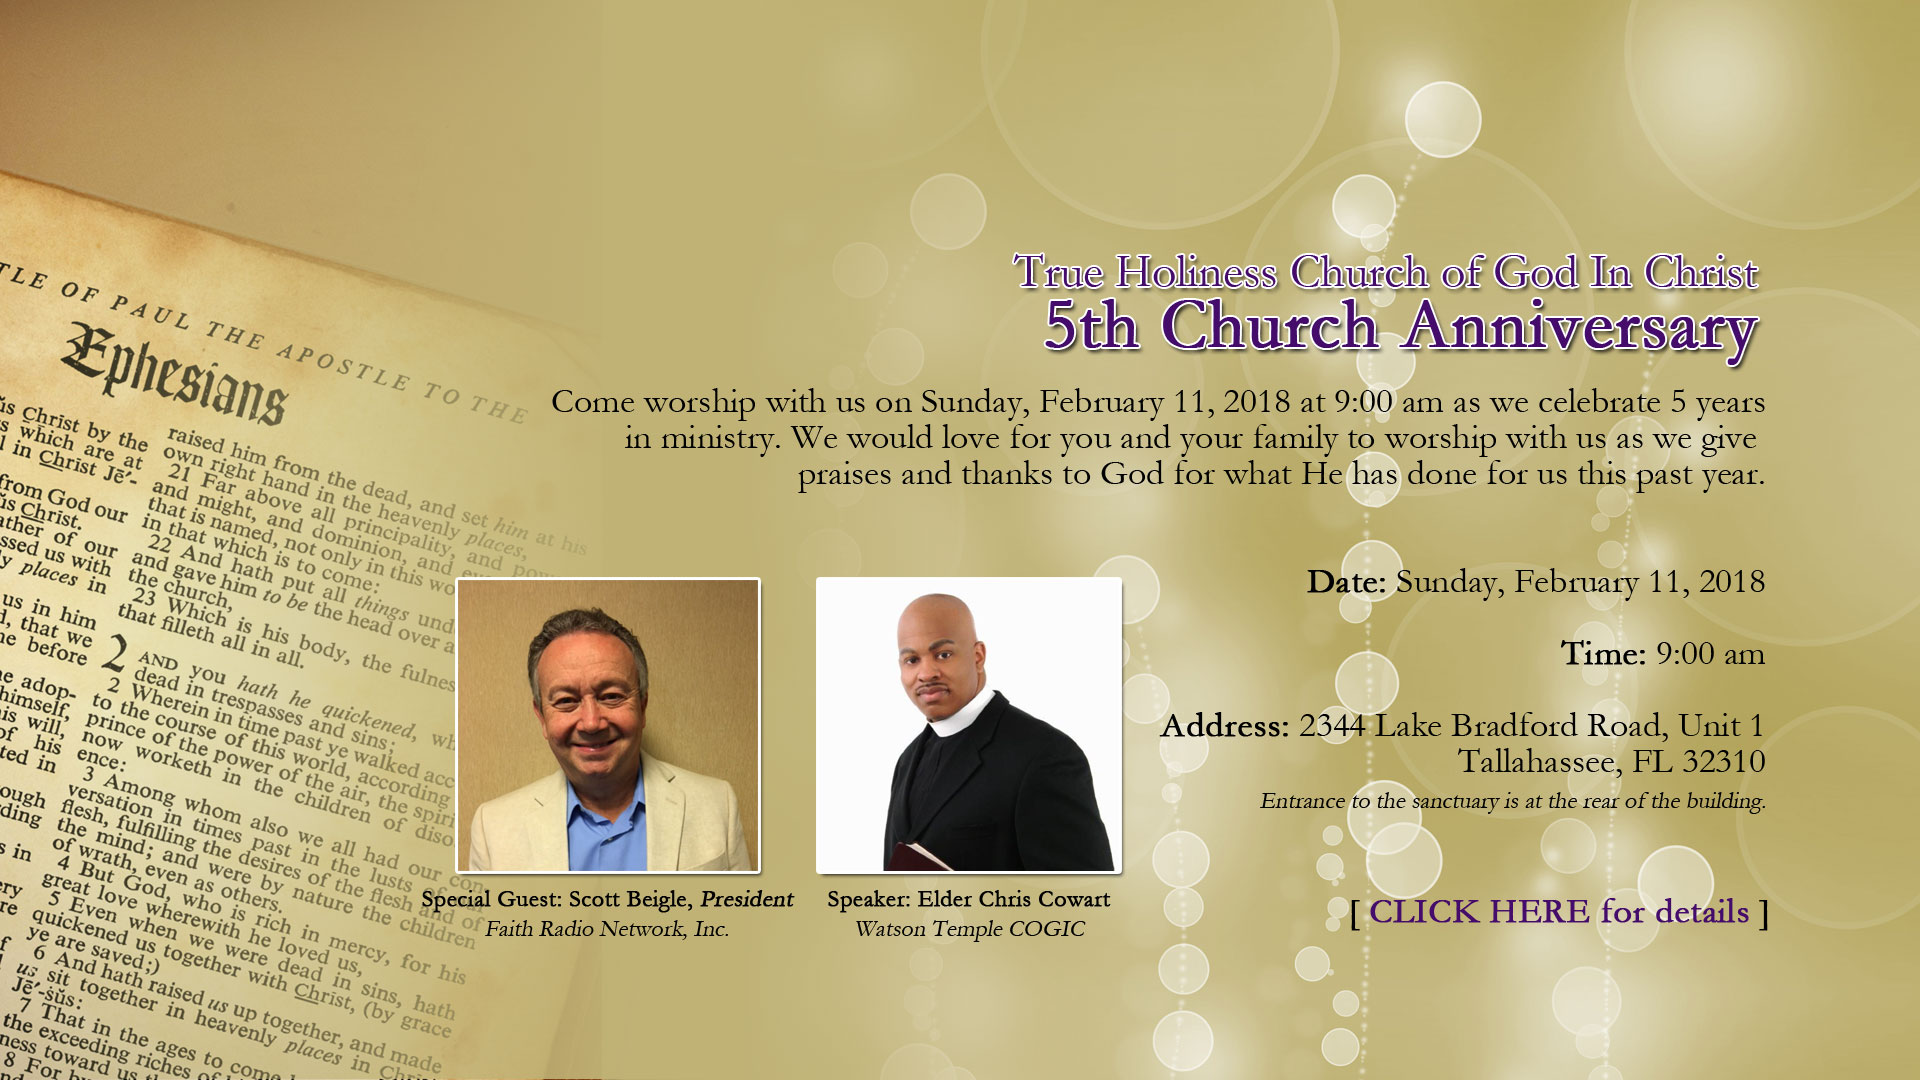 5th Church Anniversary service